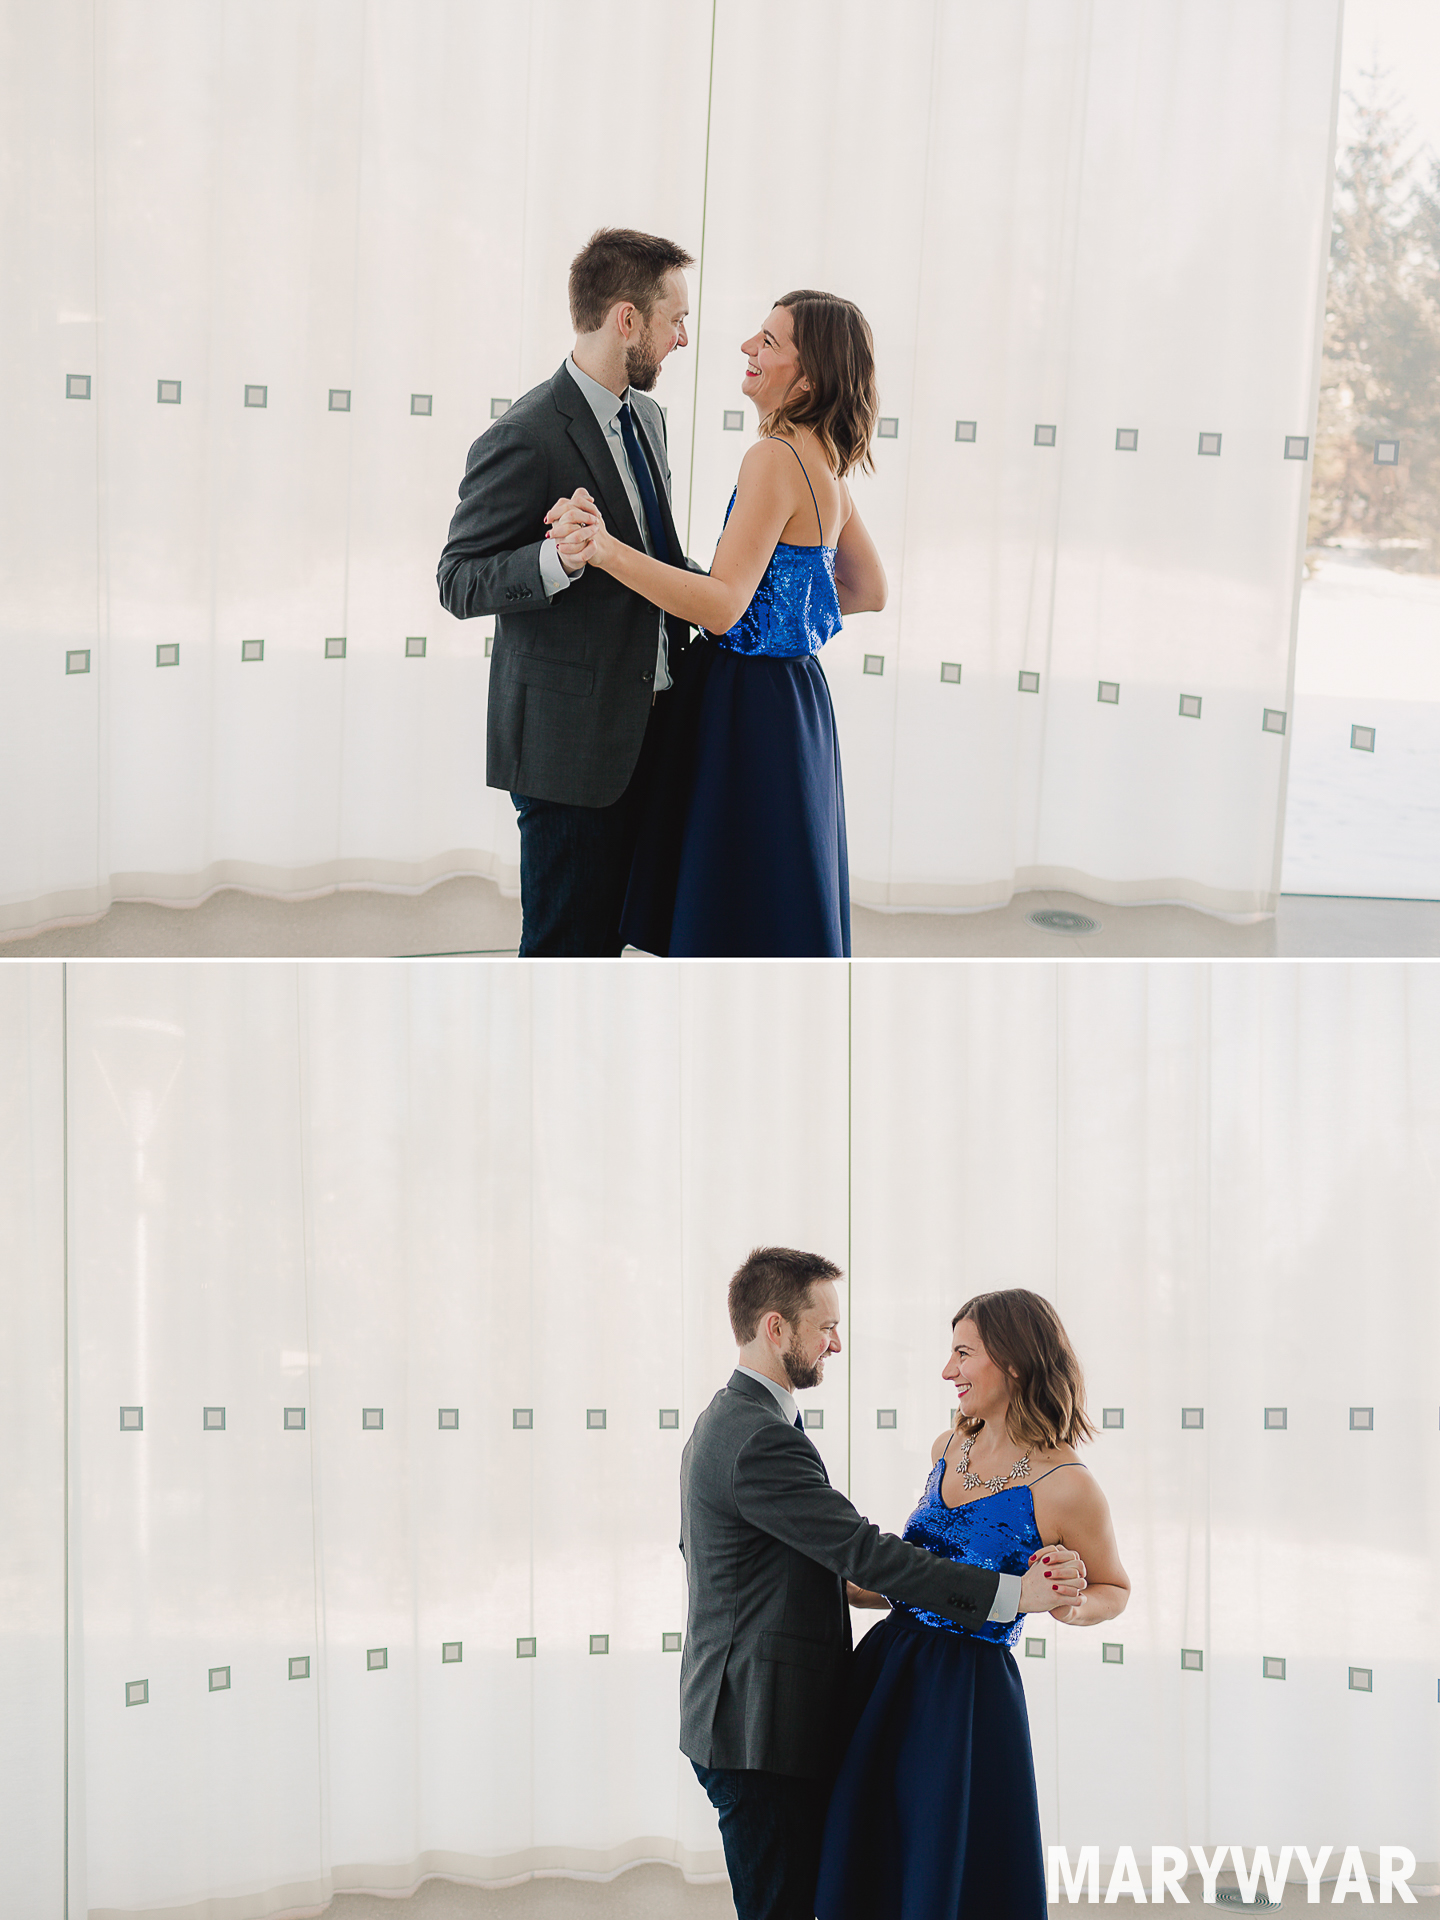 Toledo-Glass Pavilion modern engagement photos